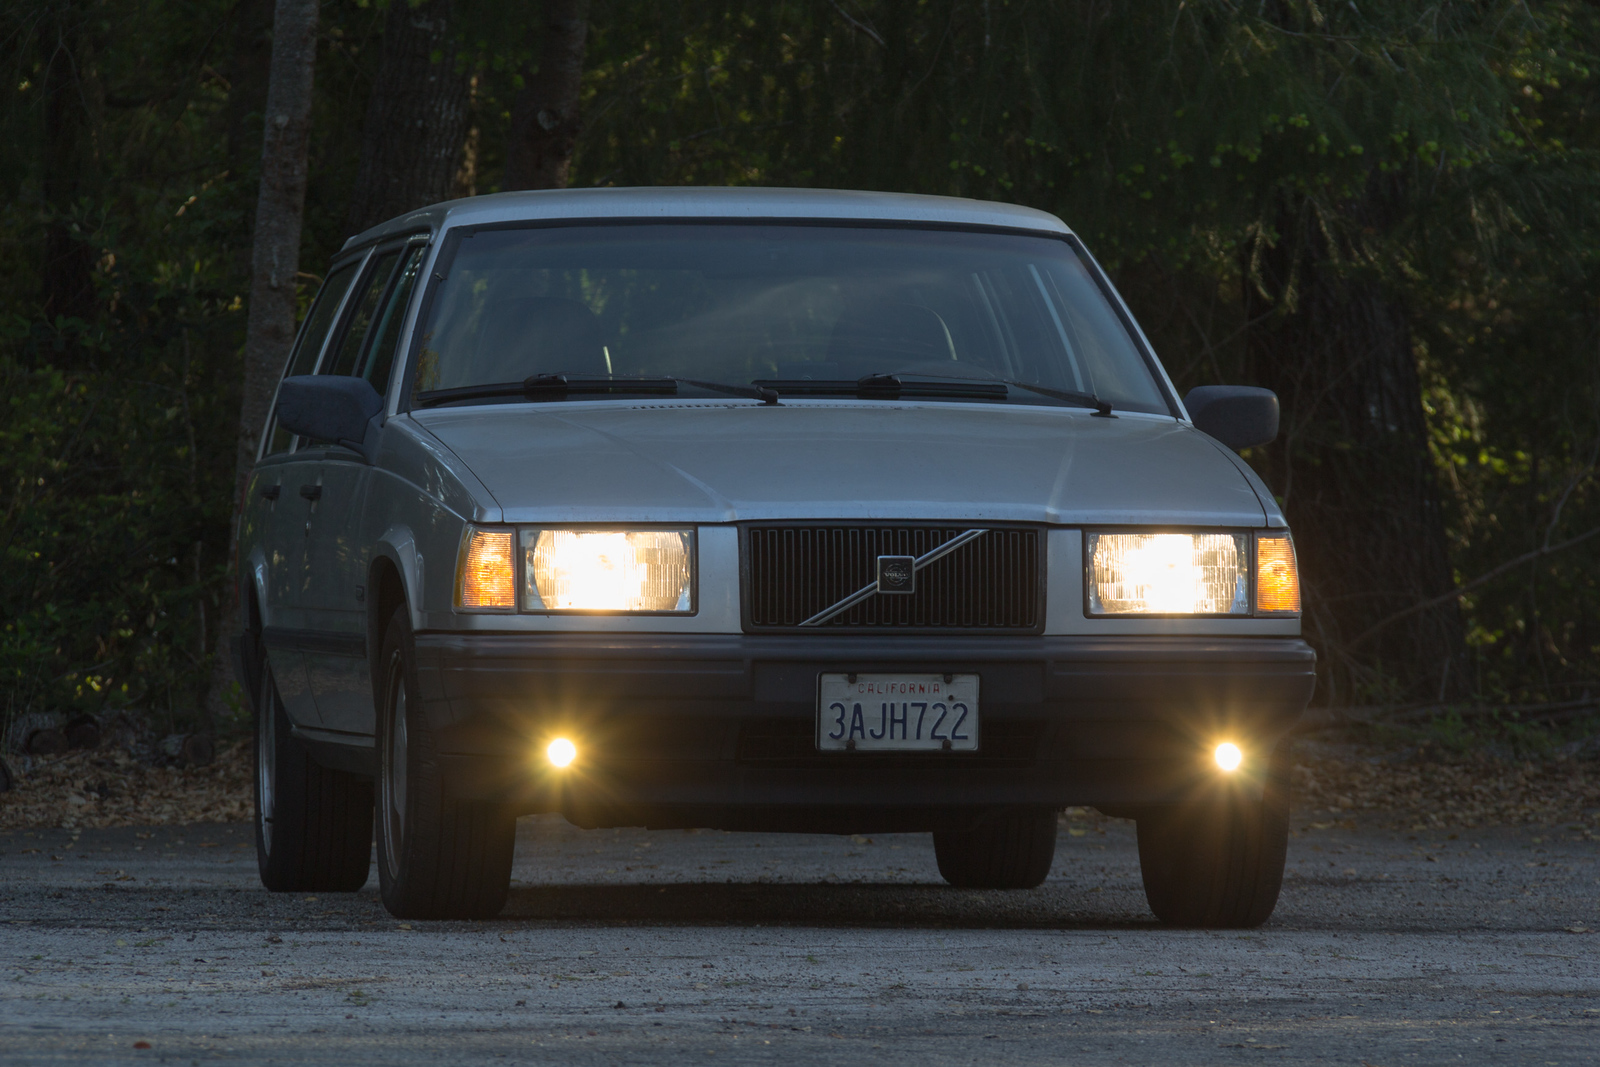 1995 940 Fog Light Wiring Volvo Forums Enthusiasts Forum A Optilux Diagram I Wouldnt Use More Than 55 Watt Foglamps Mounted Hella Microde Fogs Under My Bumper And Am Quite Happy Extreme Yellow Xy H3 Bulbs